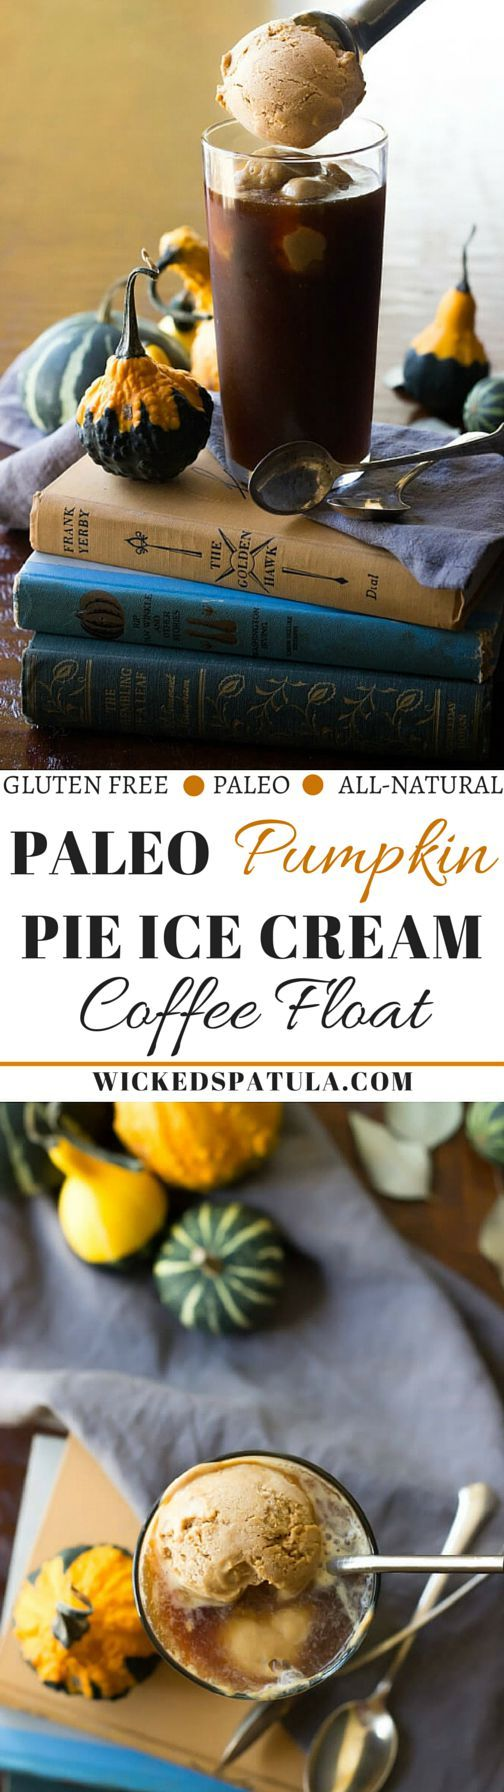 Paleo Pumpkin Pie Ice Cream Coffee Floats - This delicious treat is perfect for early fall days! Vegan, dairy free, and gluten free! | wickedspatula.com